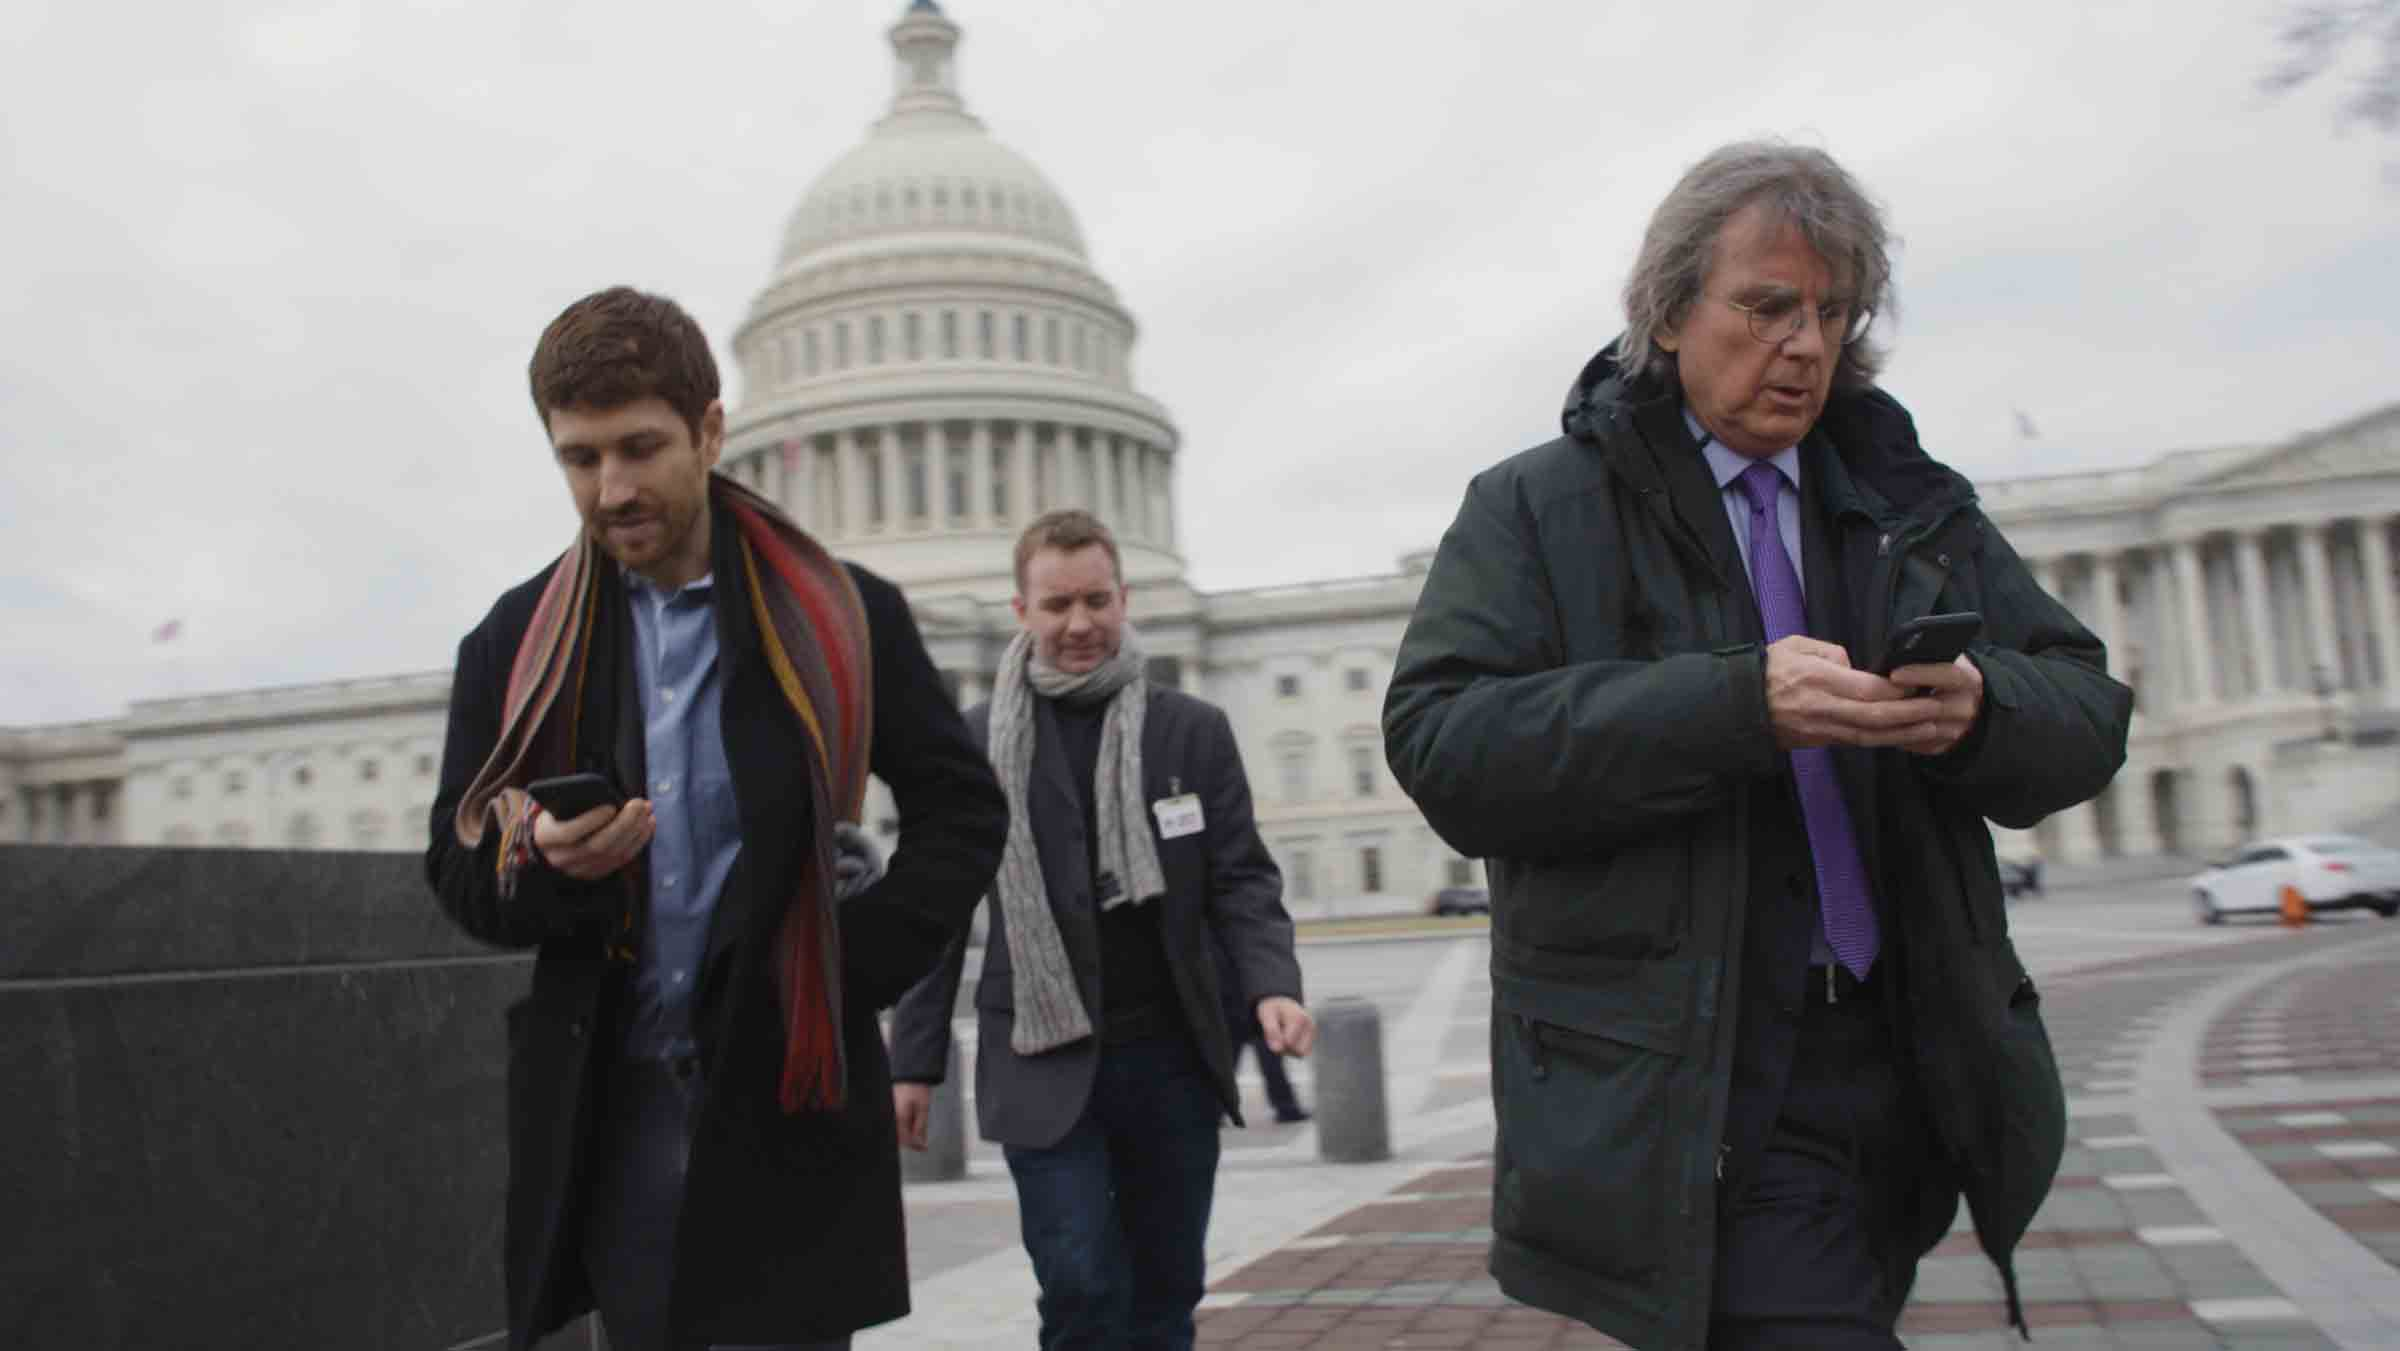 Roger McNamee and Tristan Harris in The Social Dilemma (2020)